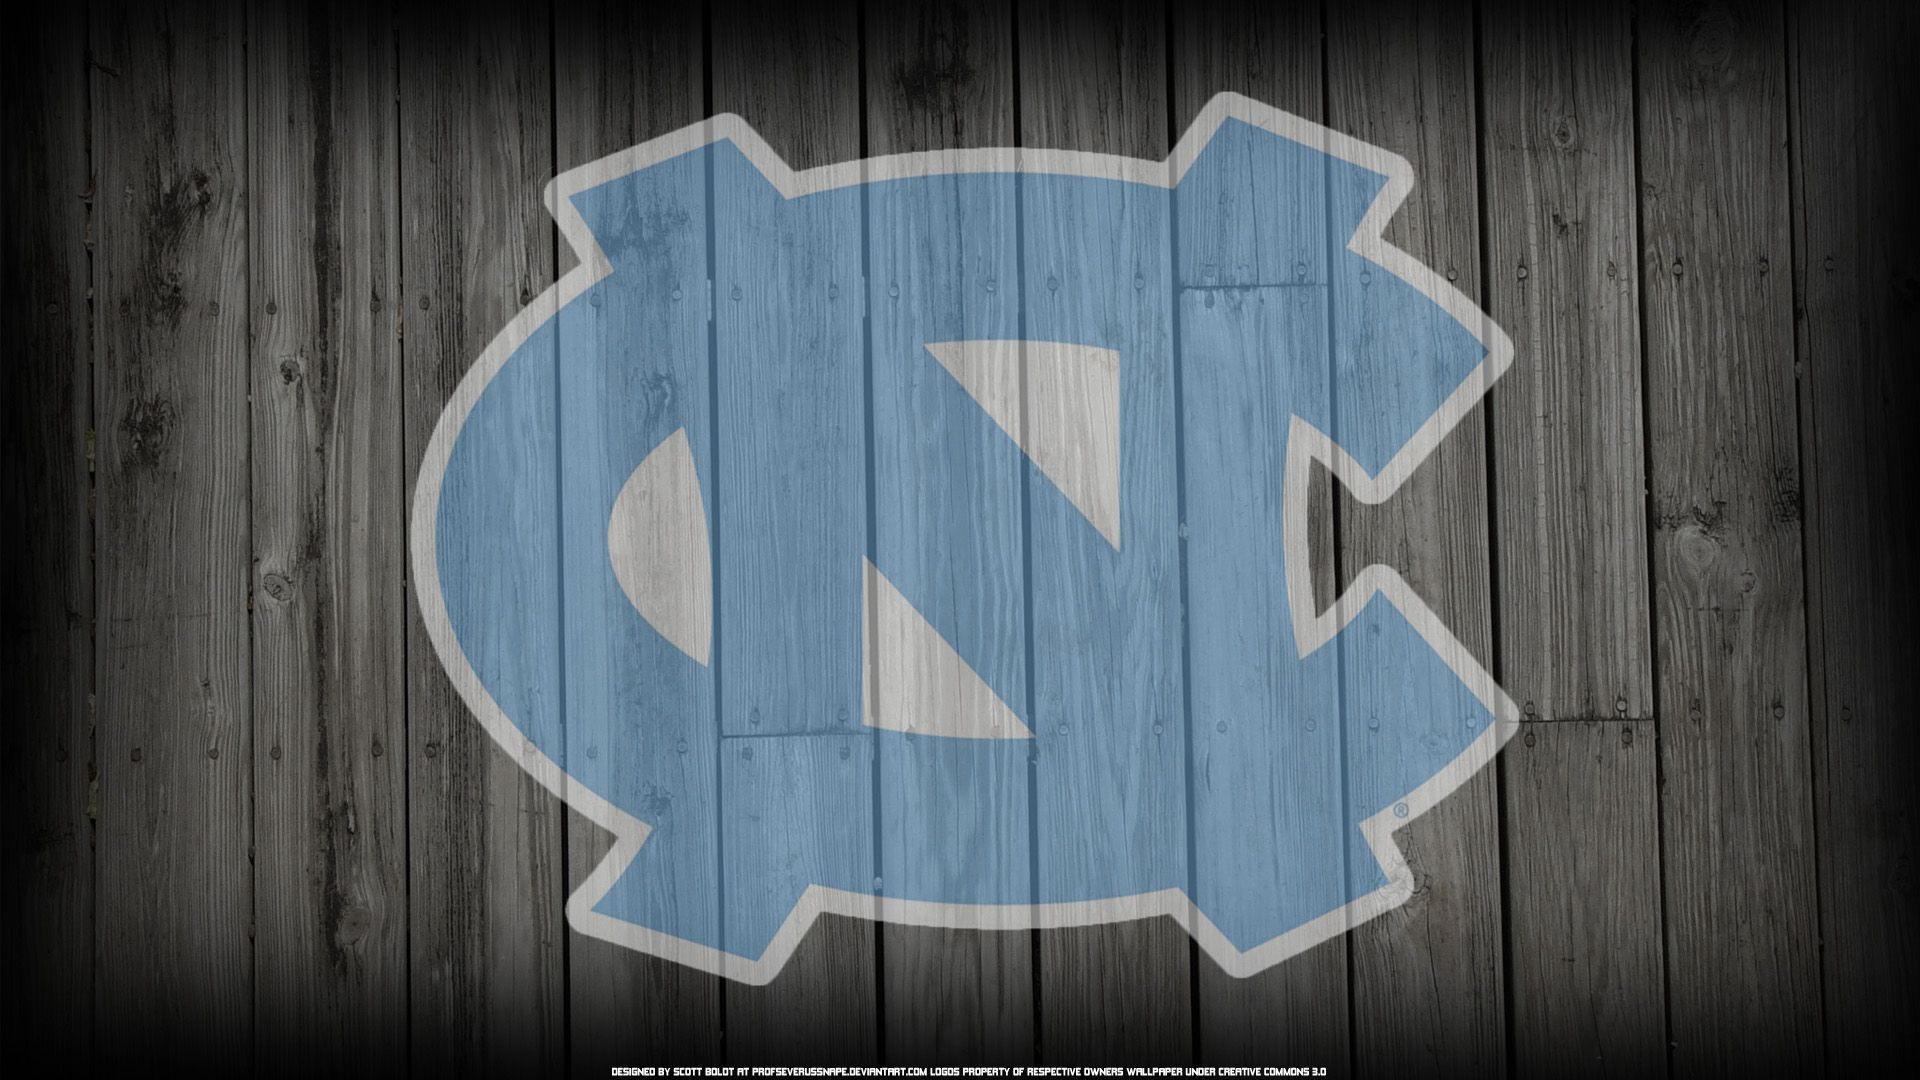 The Official Env Touch Vx11000 Sports Wallpaper Thread Page 7 North Carolina Tar Heels Wallpaper Sports Wallpapers North Carolina Tar Heels Basketball